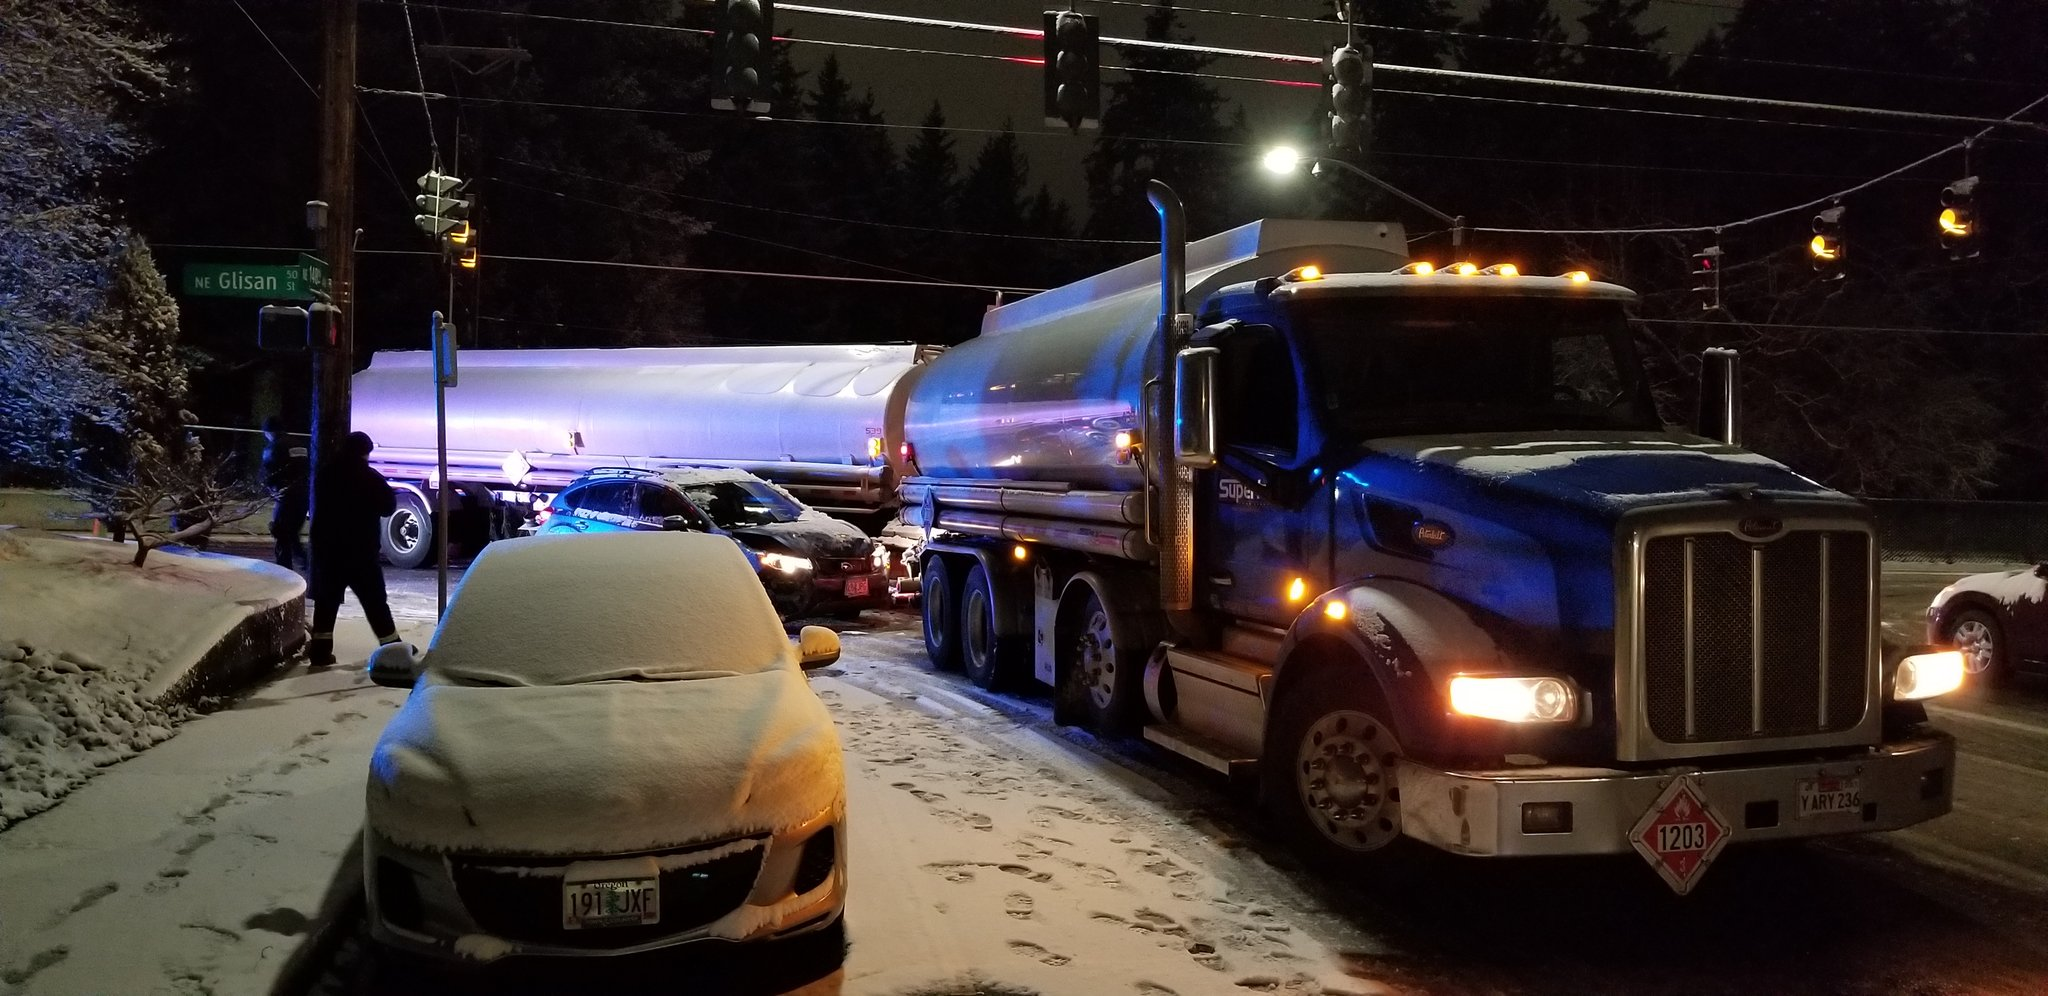 Portland Police Bureau responded to several crashes on Feb. 5, 2019 after falling snow left roads icy overnight. Many drivers slid off the road into barriers or other vehicles. This crash is at Northeast 148th Avenue and Northeast Glisan Street. Photo courtesy Portland Police Bureau